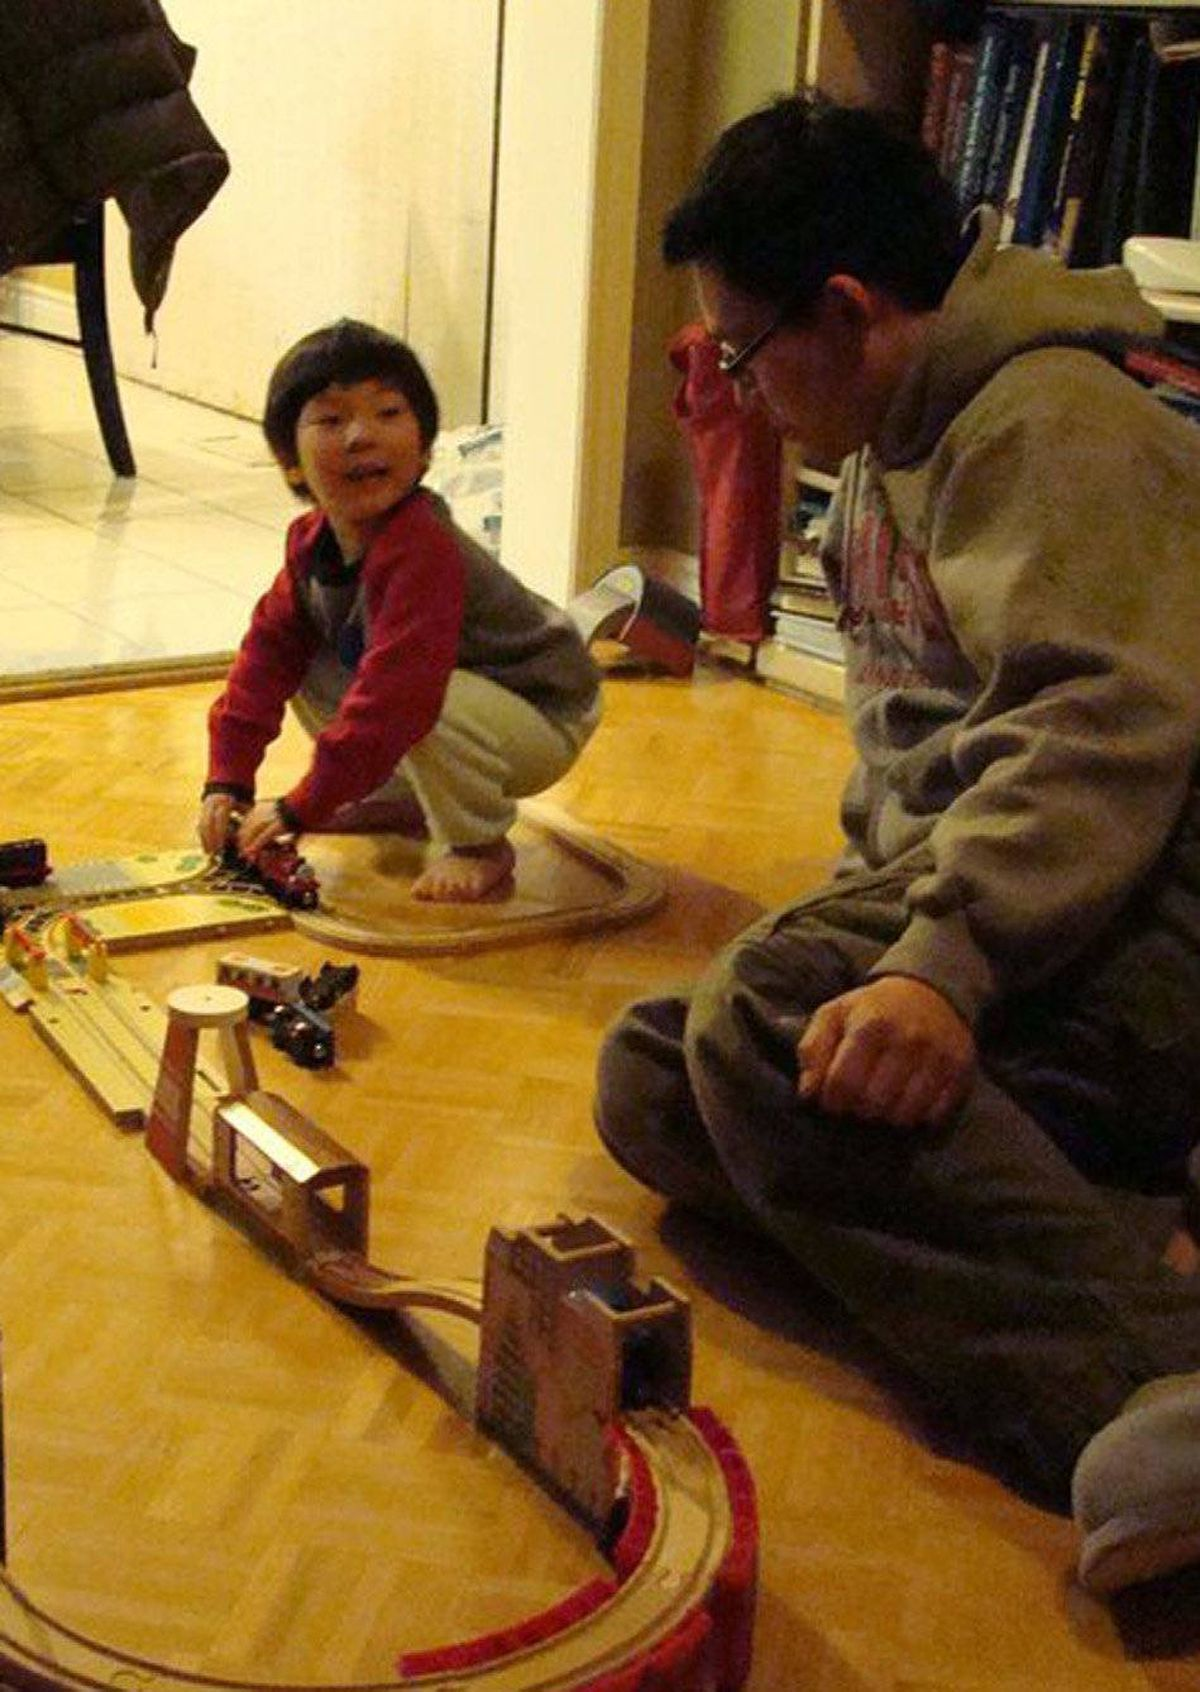 Building train tracks together has become our daily entertainment for the evening.